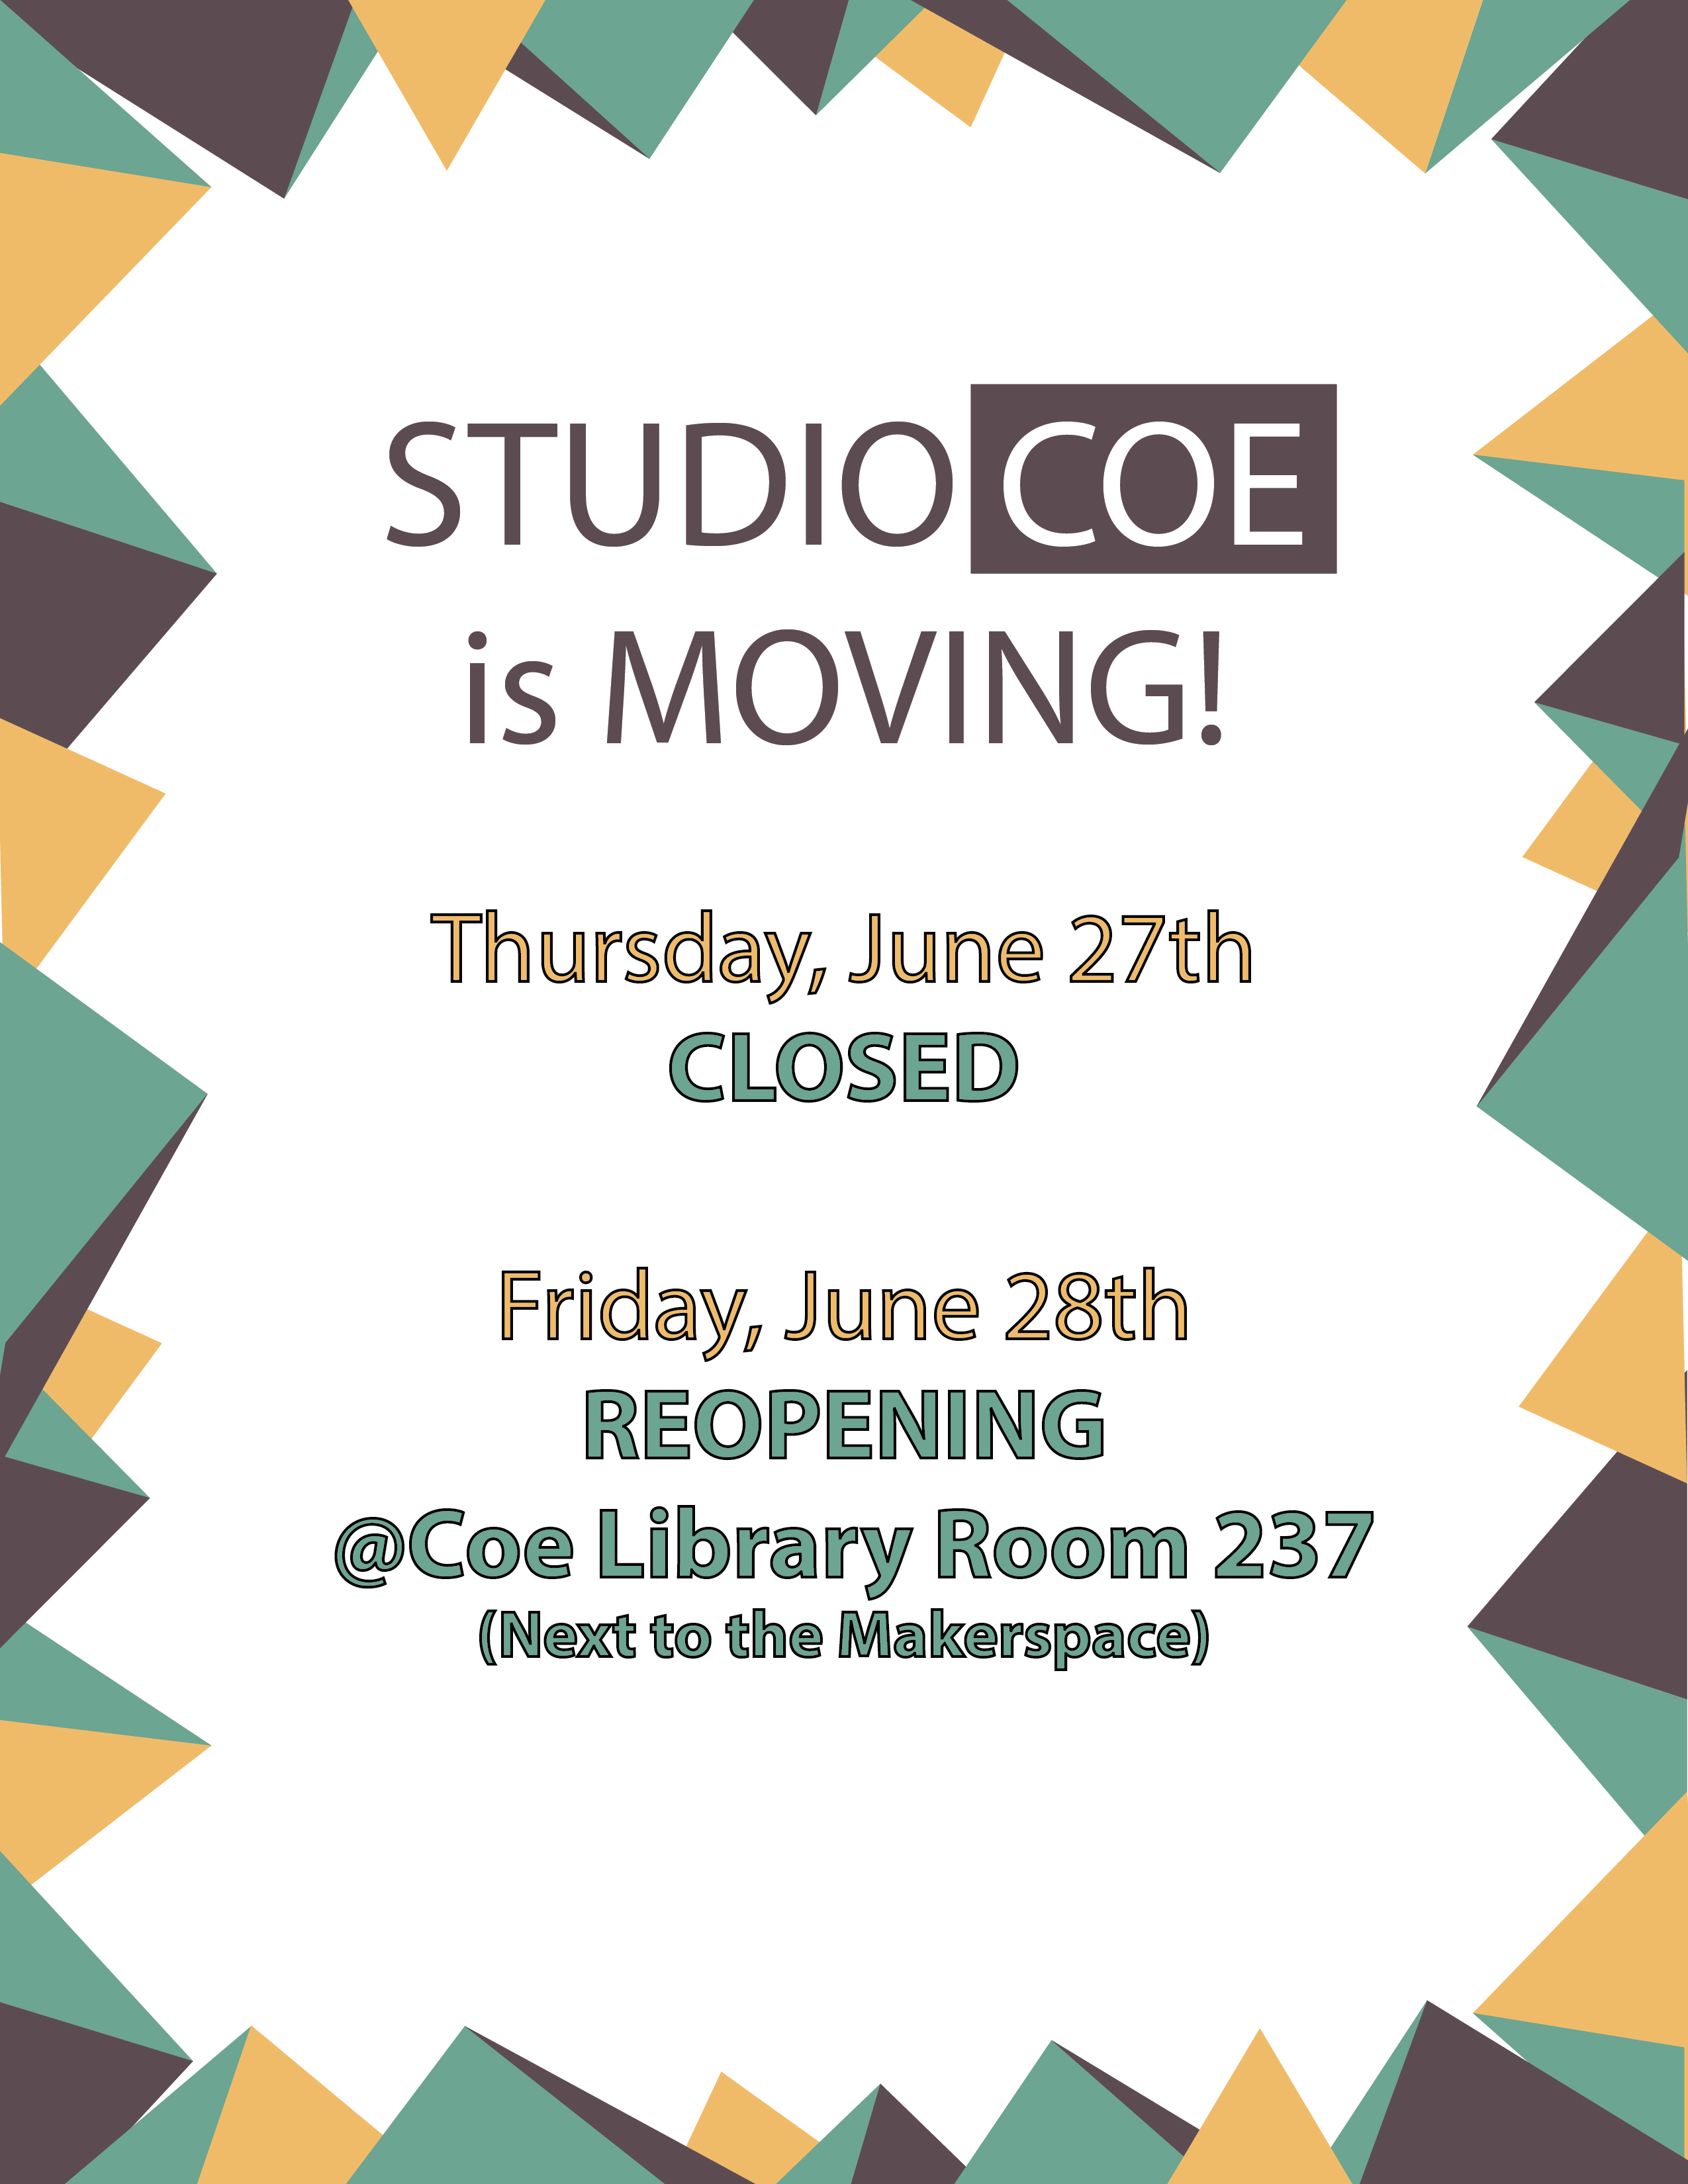 Studio Coe is moving! Thursday, June 27 - closed. Friday, June 28 - reopening in Coe library room 237 (next to the Makerspace)